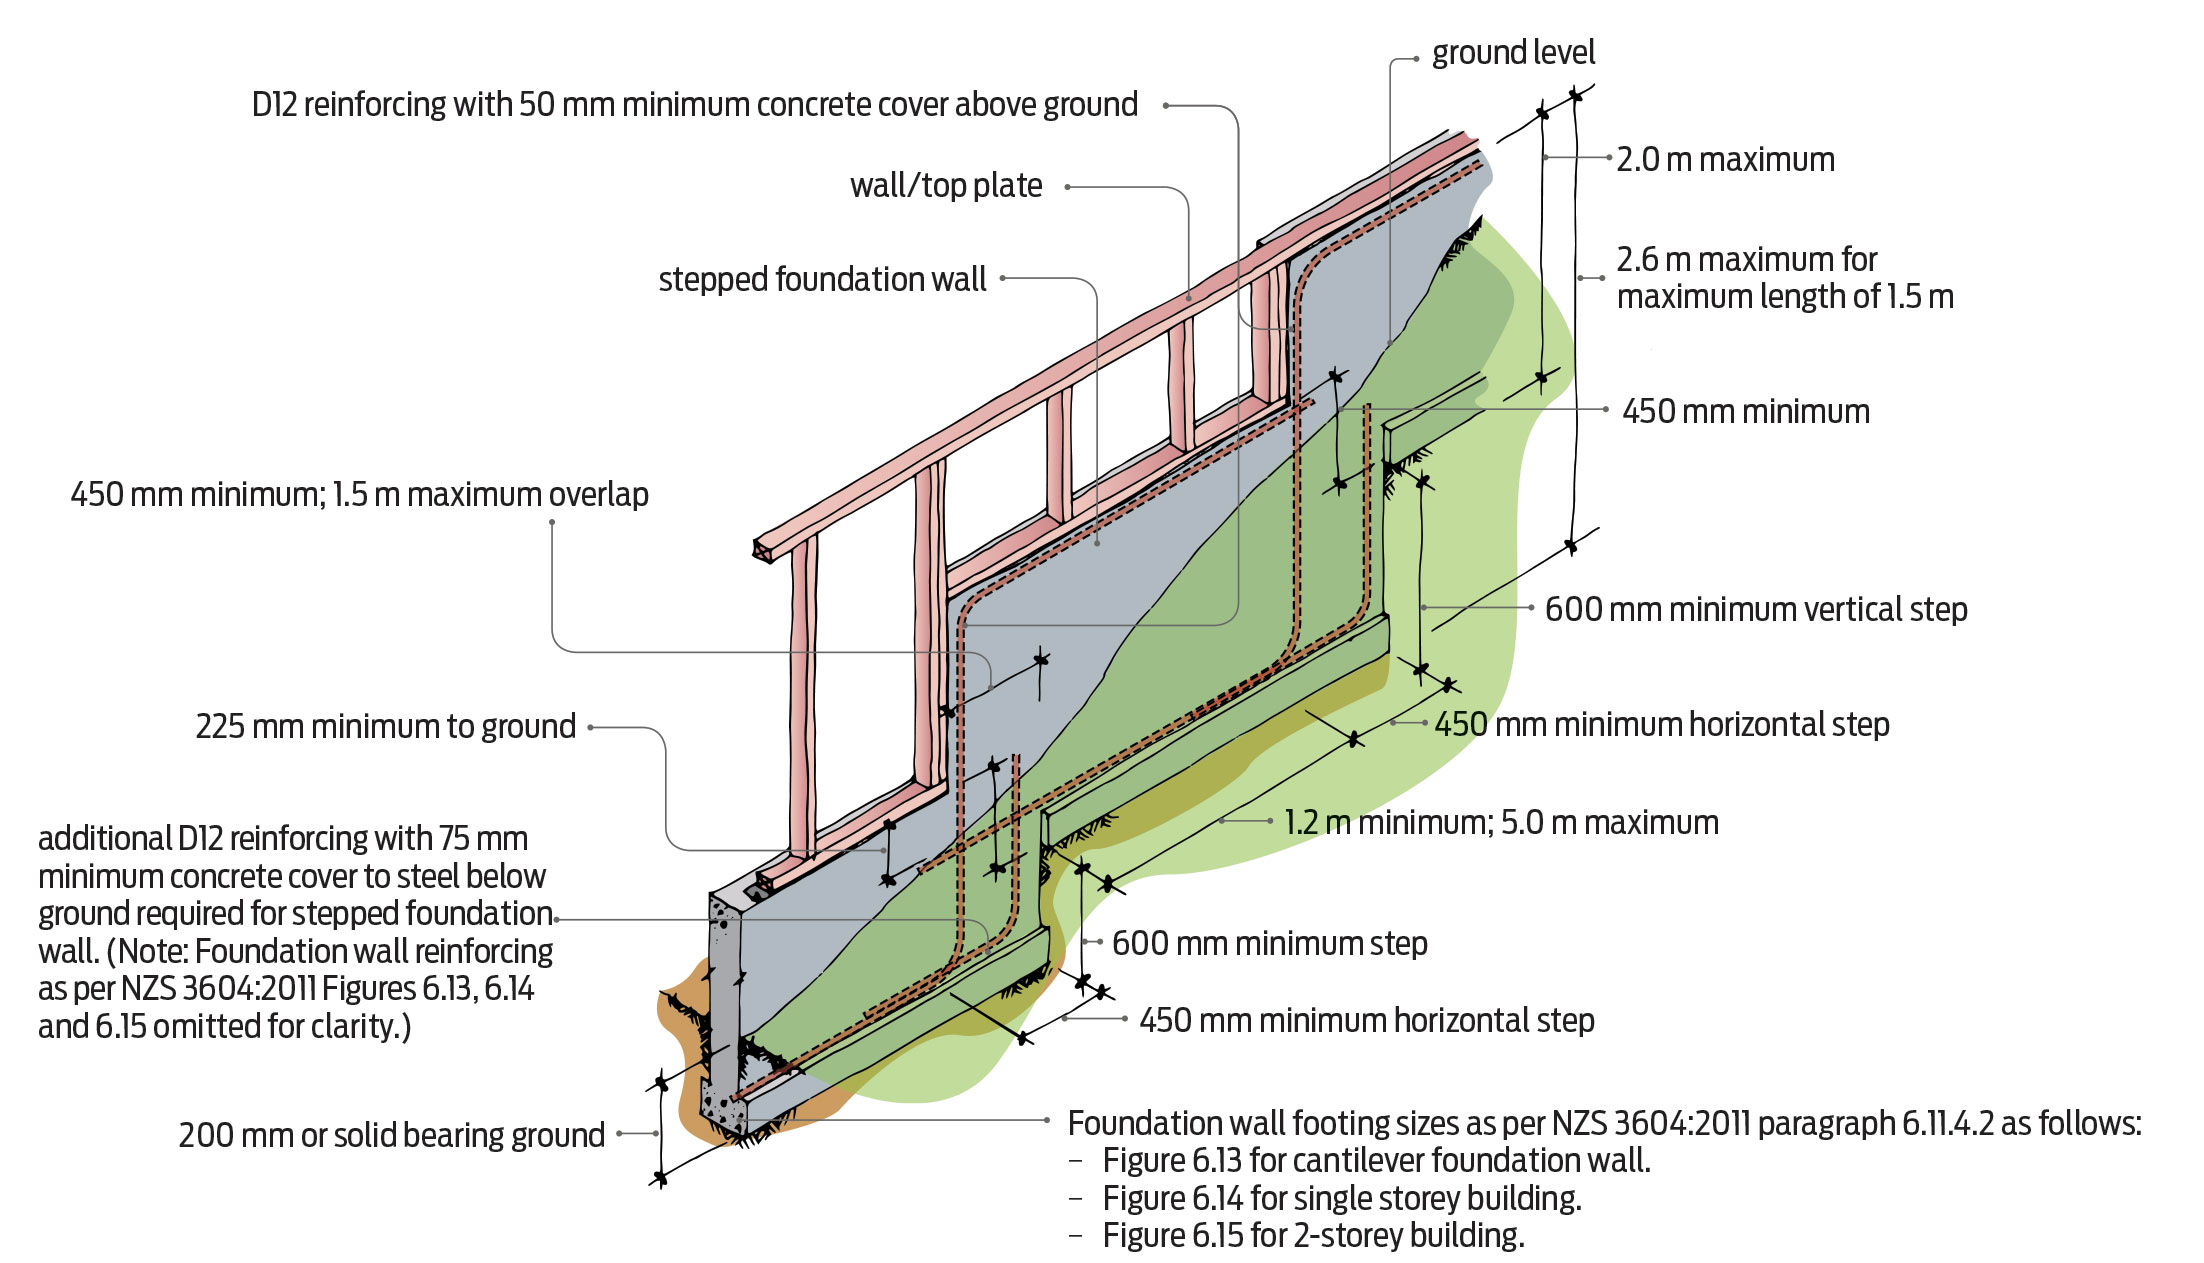 Concrete foundation wall reinforcing | Building Performance